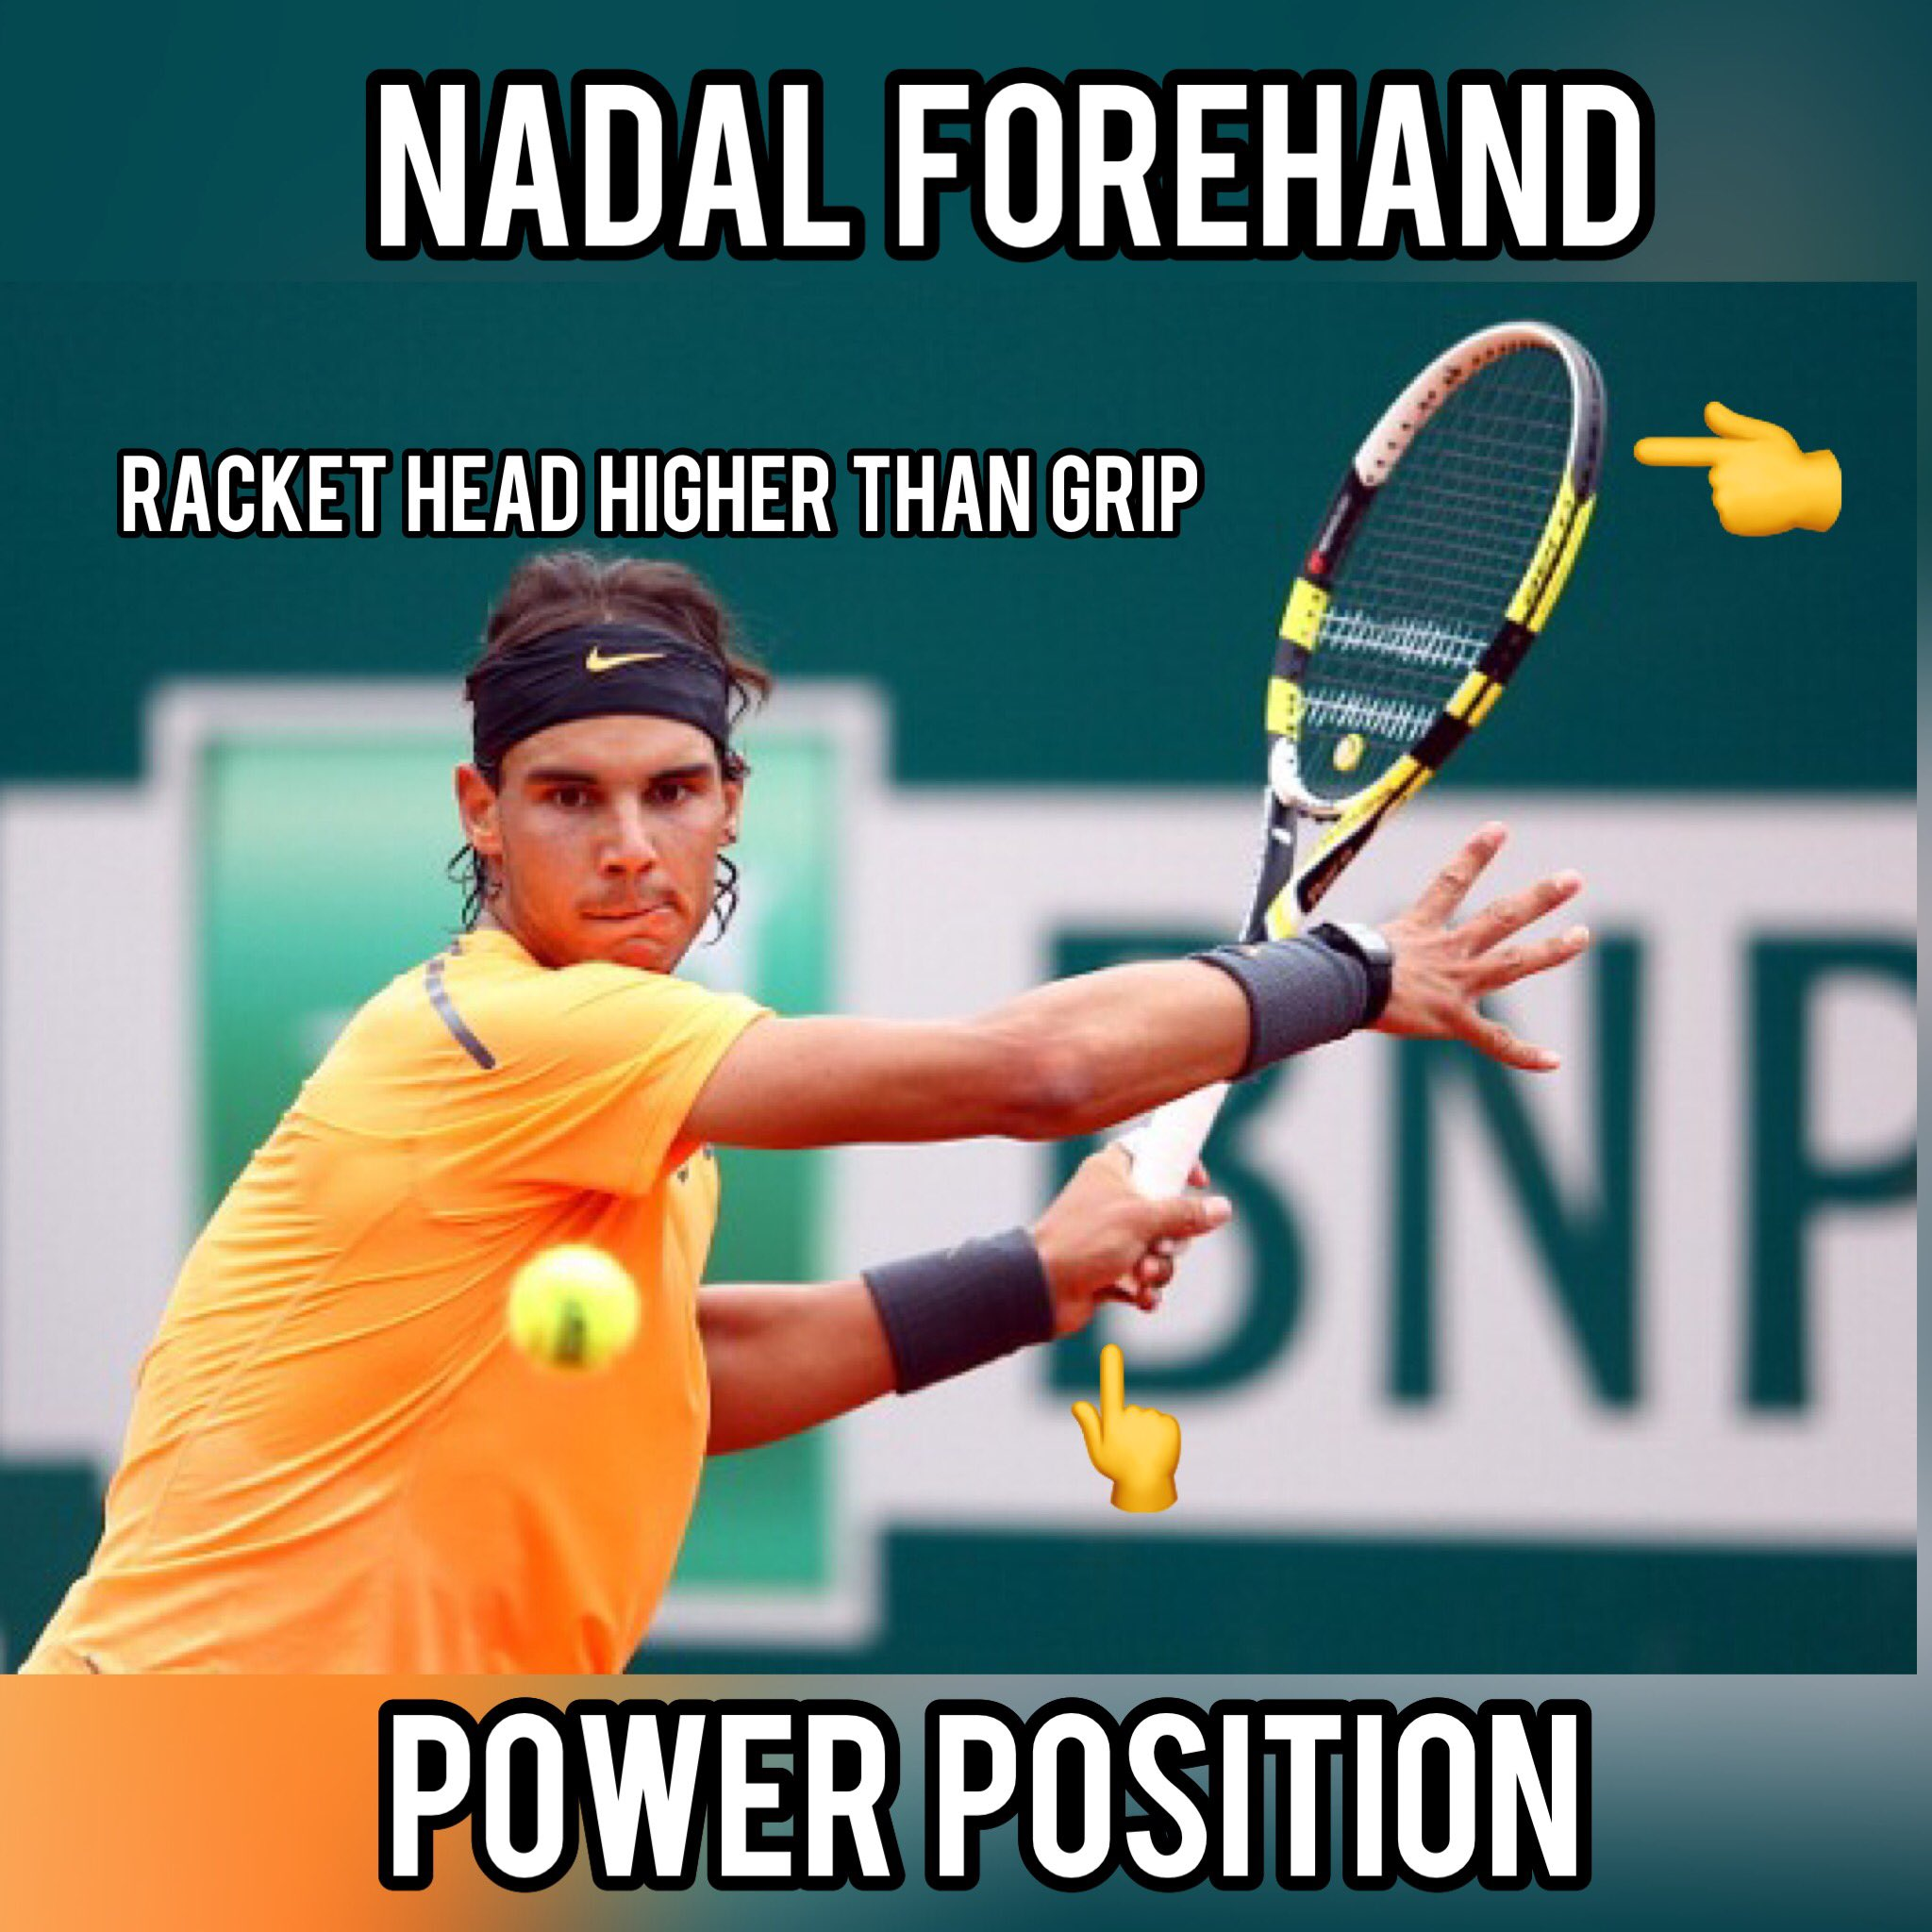 Top Tennis Training Pro Tennis Lessons On Twitter Rafa Nadal In His Forehand Power Position Follow Us Tennis Training Nadal S Racket Head Is Much Higher Than The Grip In This